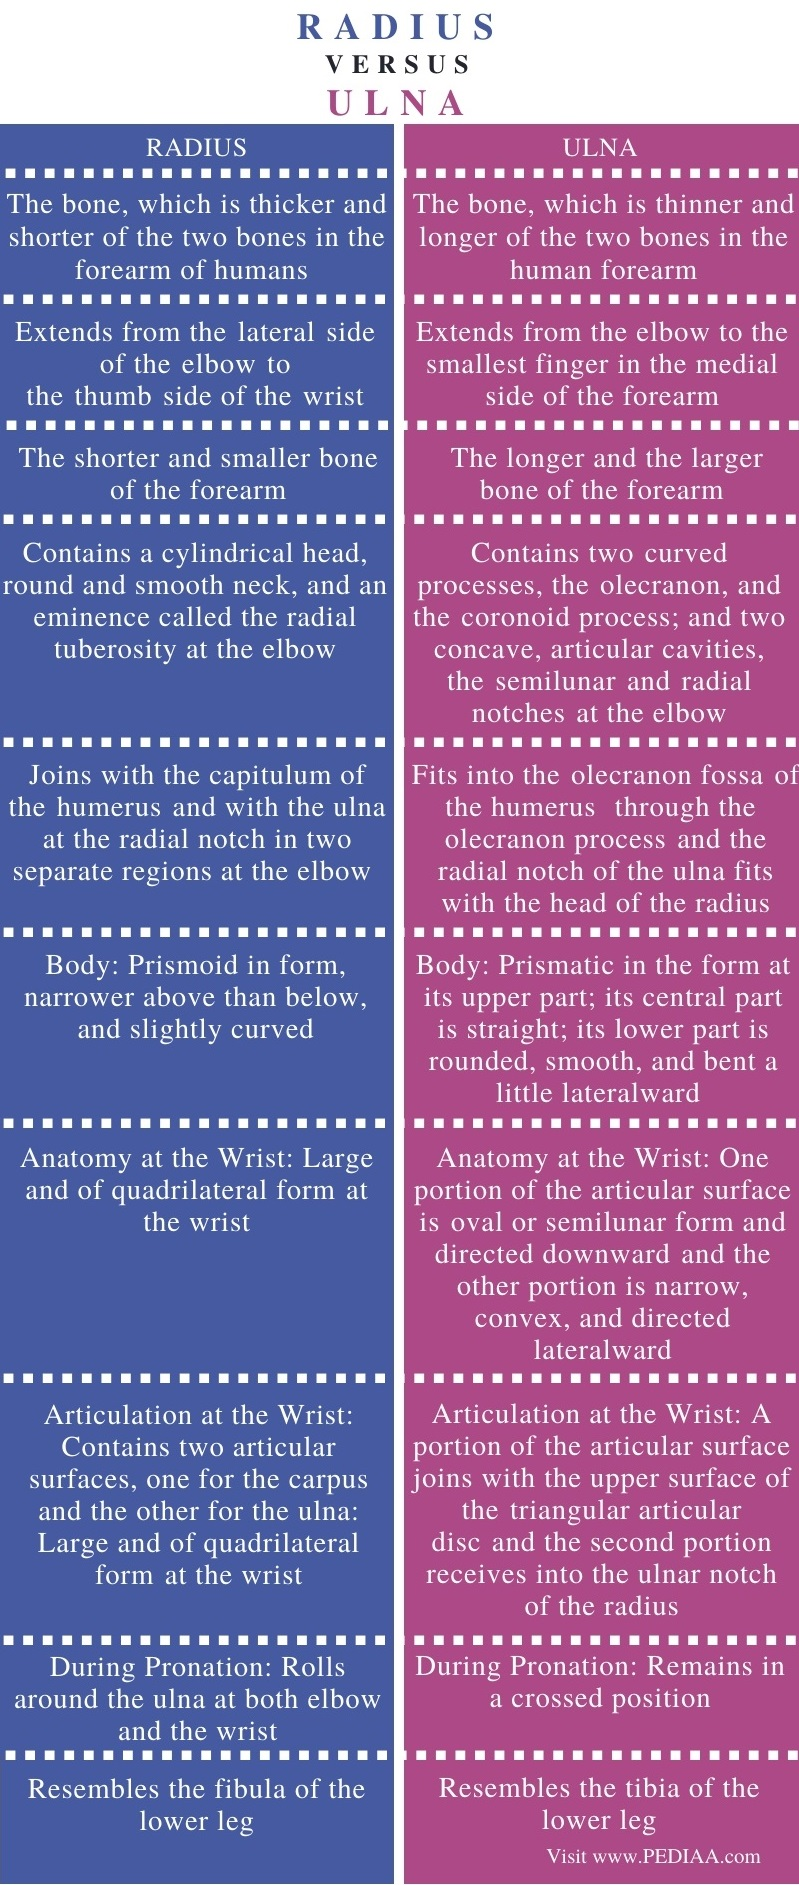 Difference Between Radius and Ulna - Comparison Summary